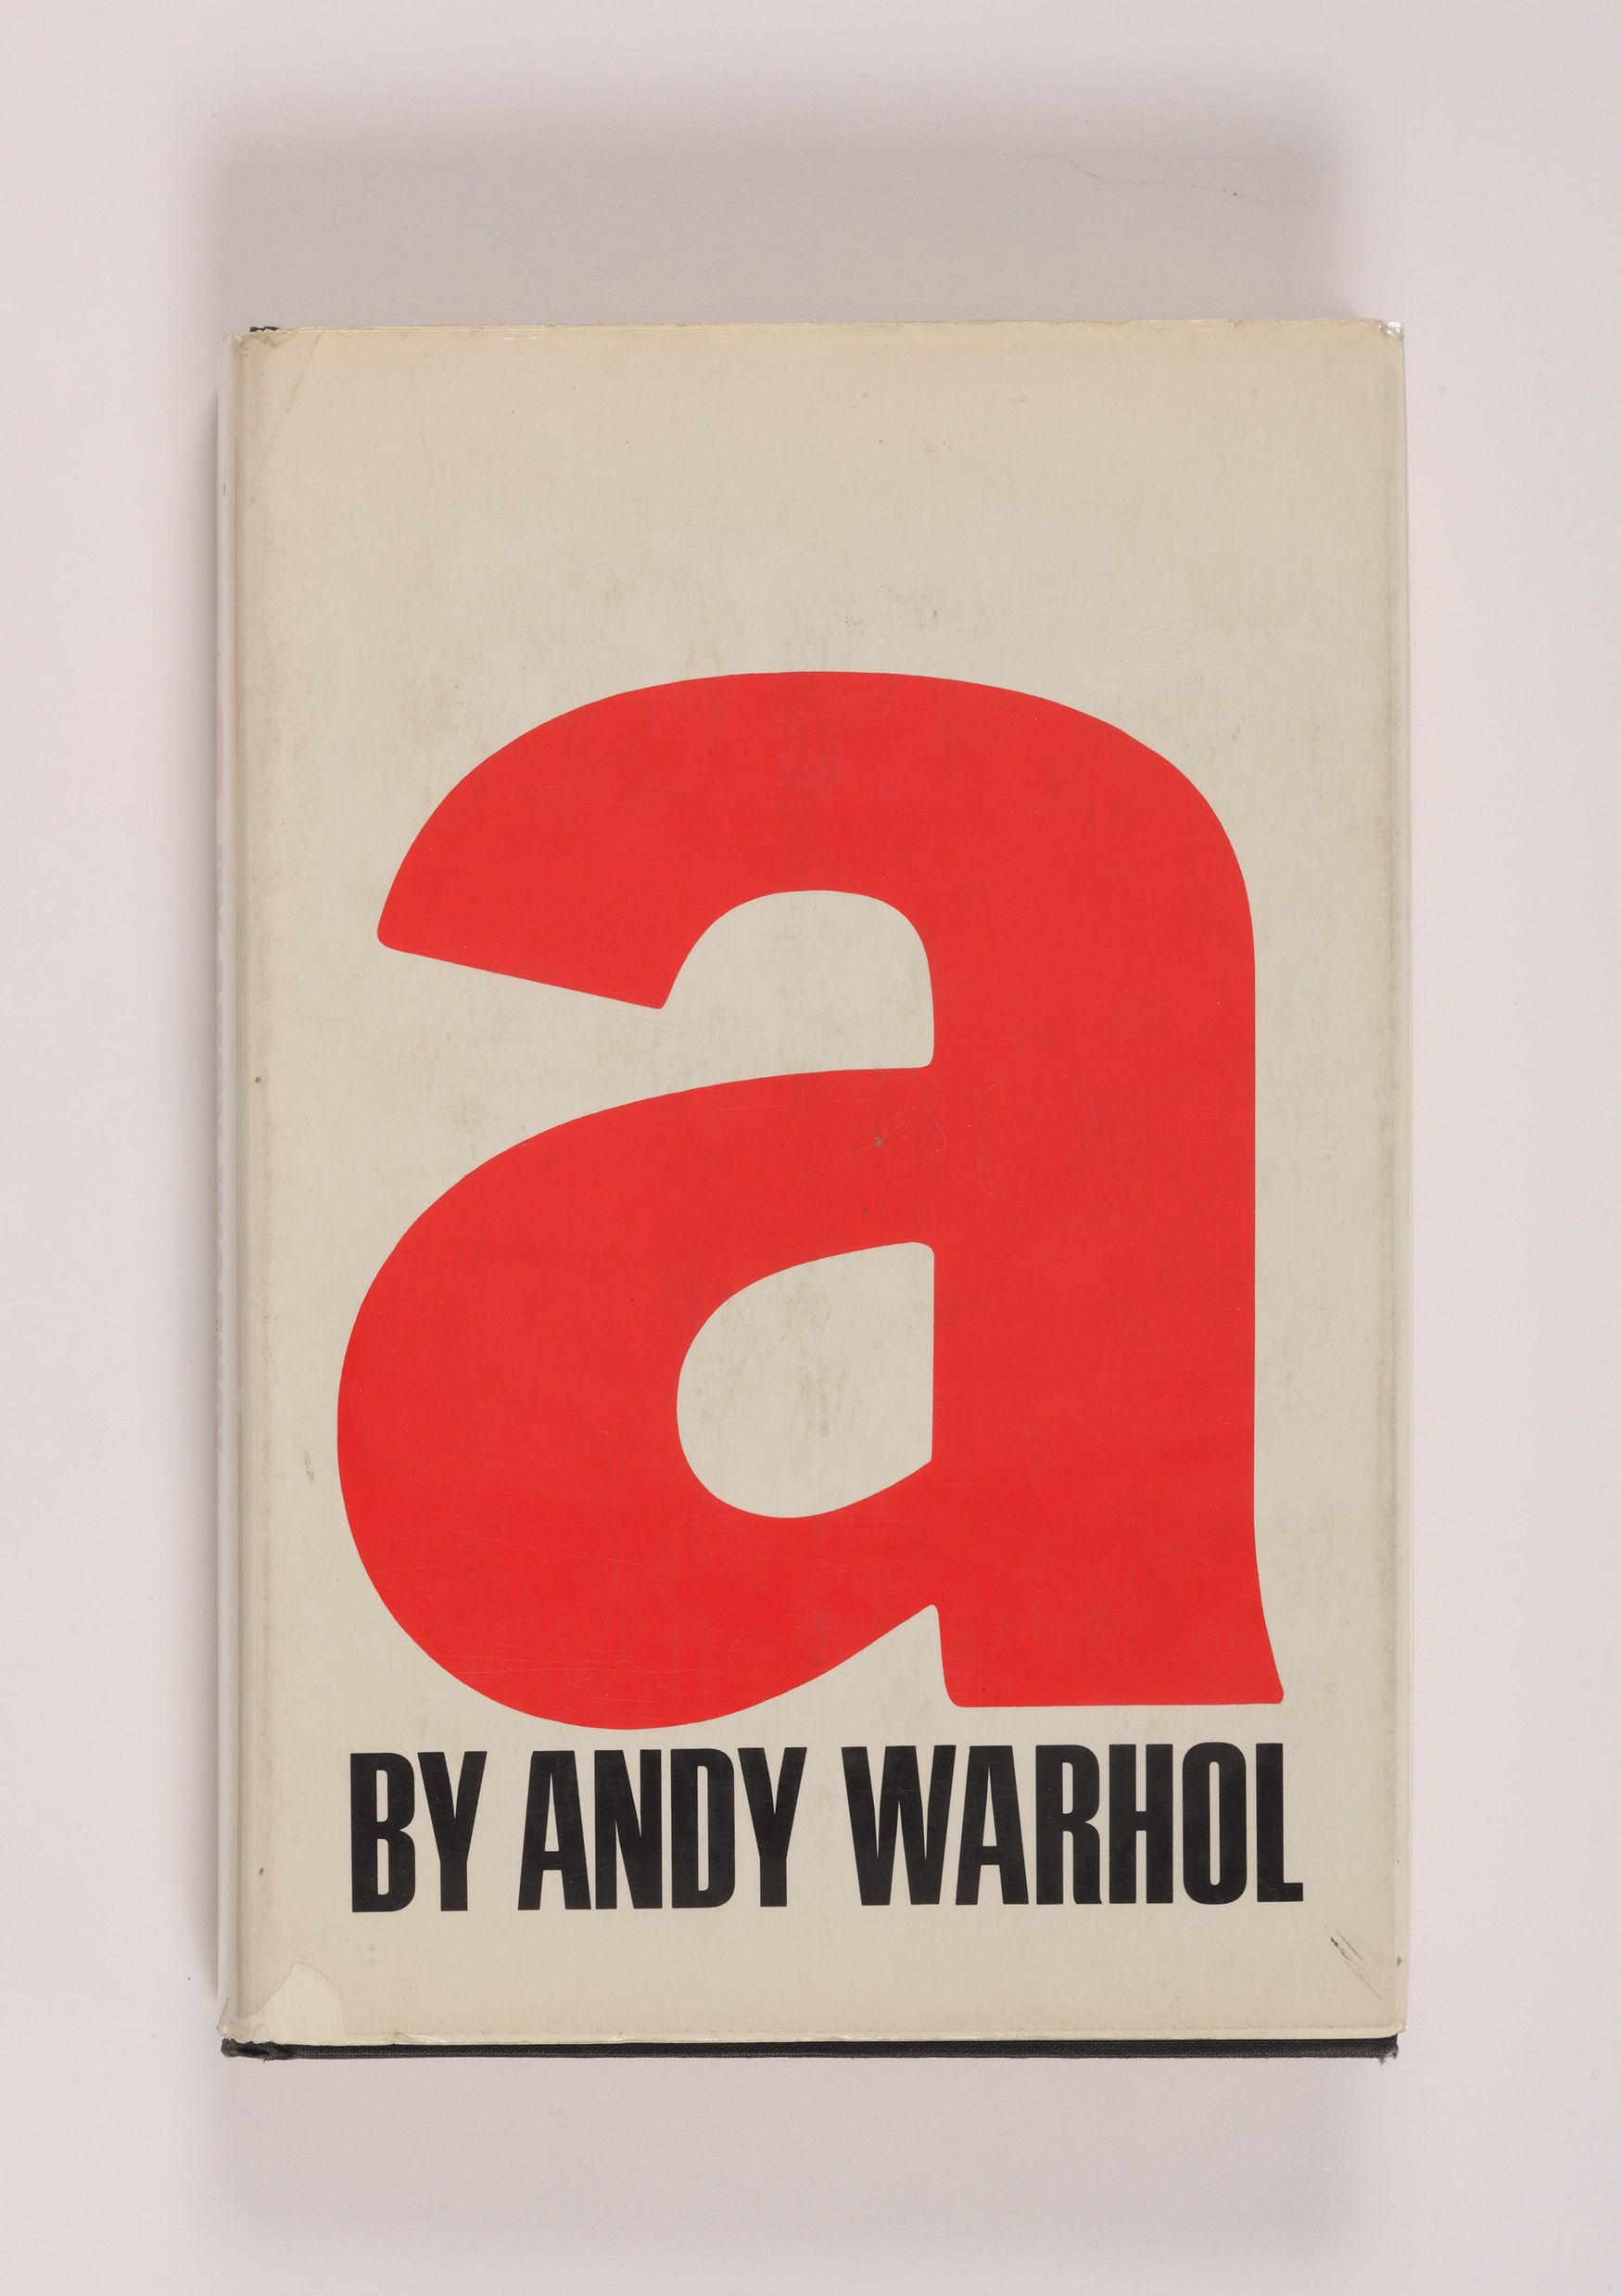 Andy Warhol, A: A Novel, 1968 ©The Andy Warhol Foundation for the Visual Arts, Inc., Cortesía: The Andy Warhol Museum, Pittsburgh